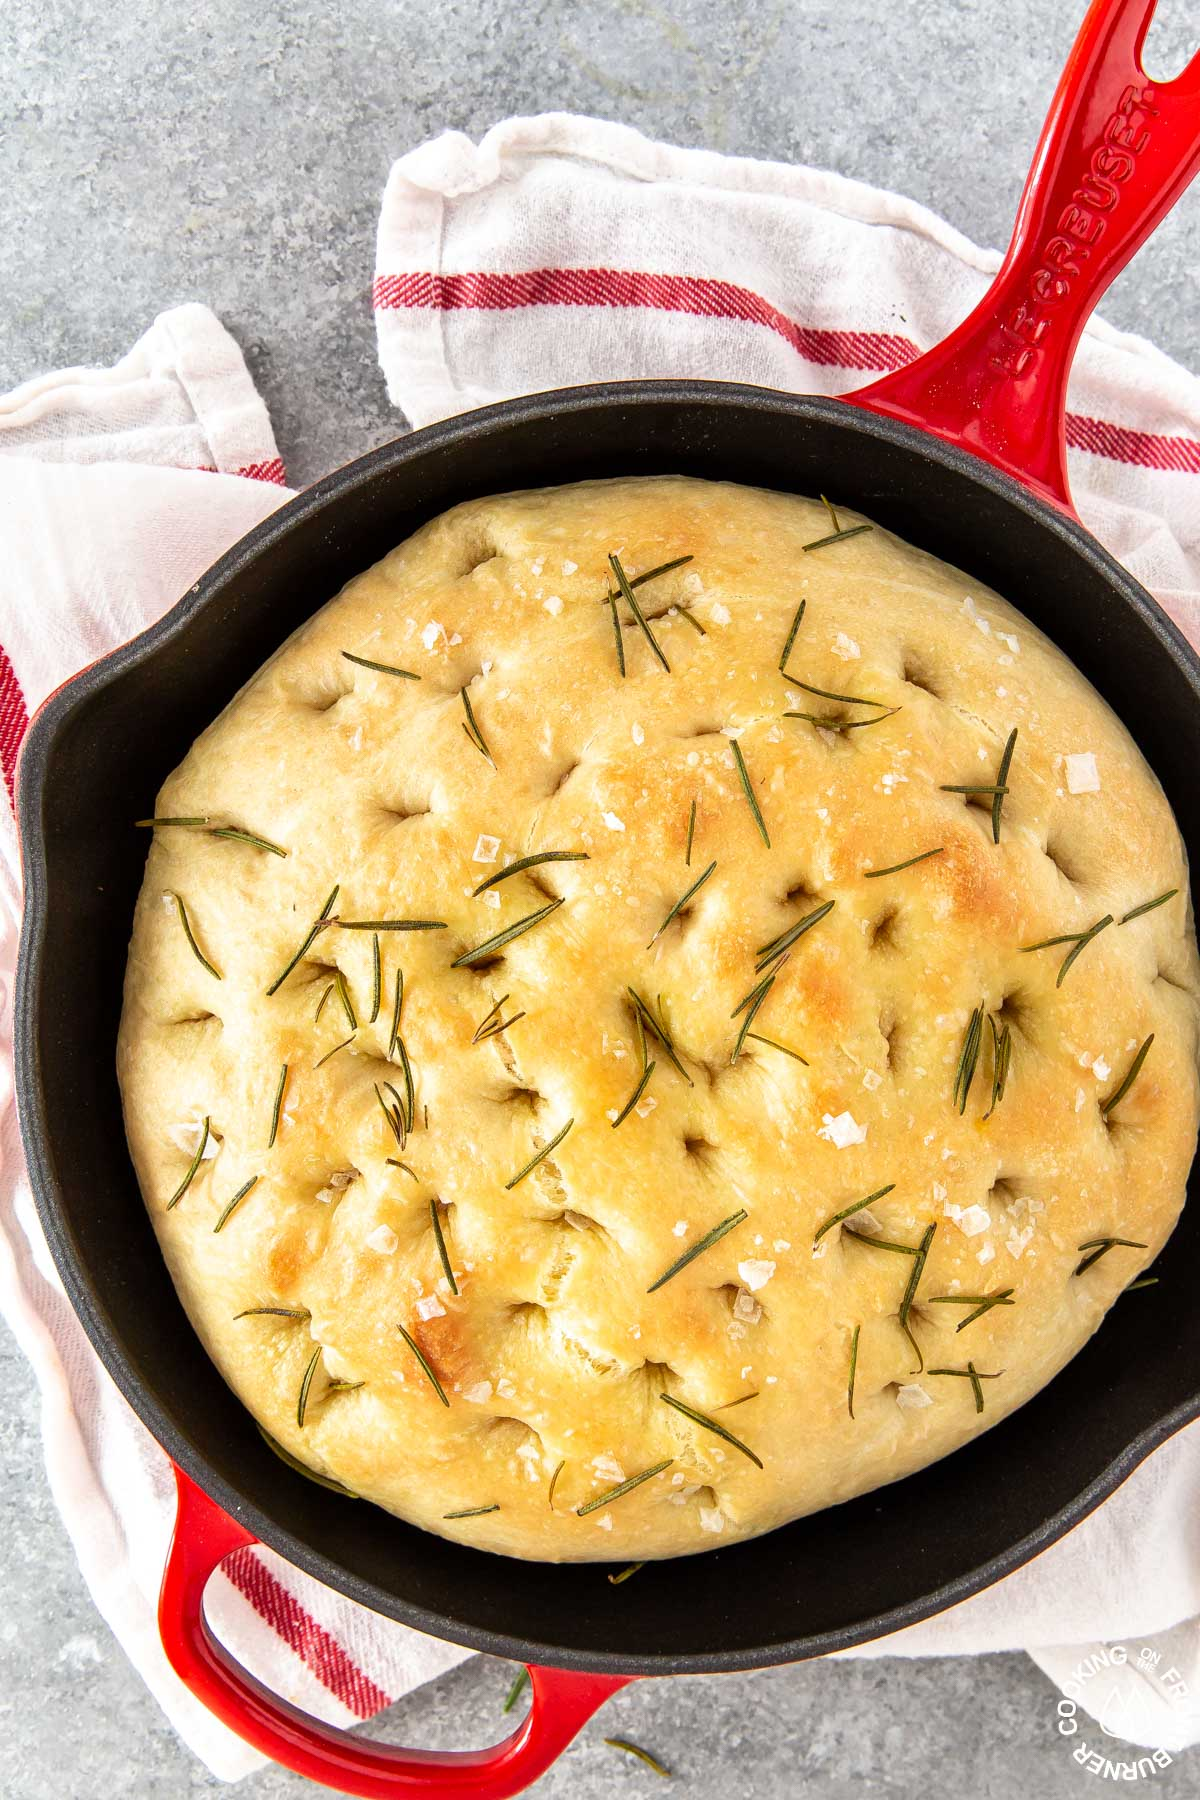 a skillet with baked focaccia bread